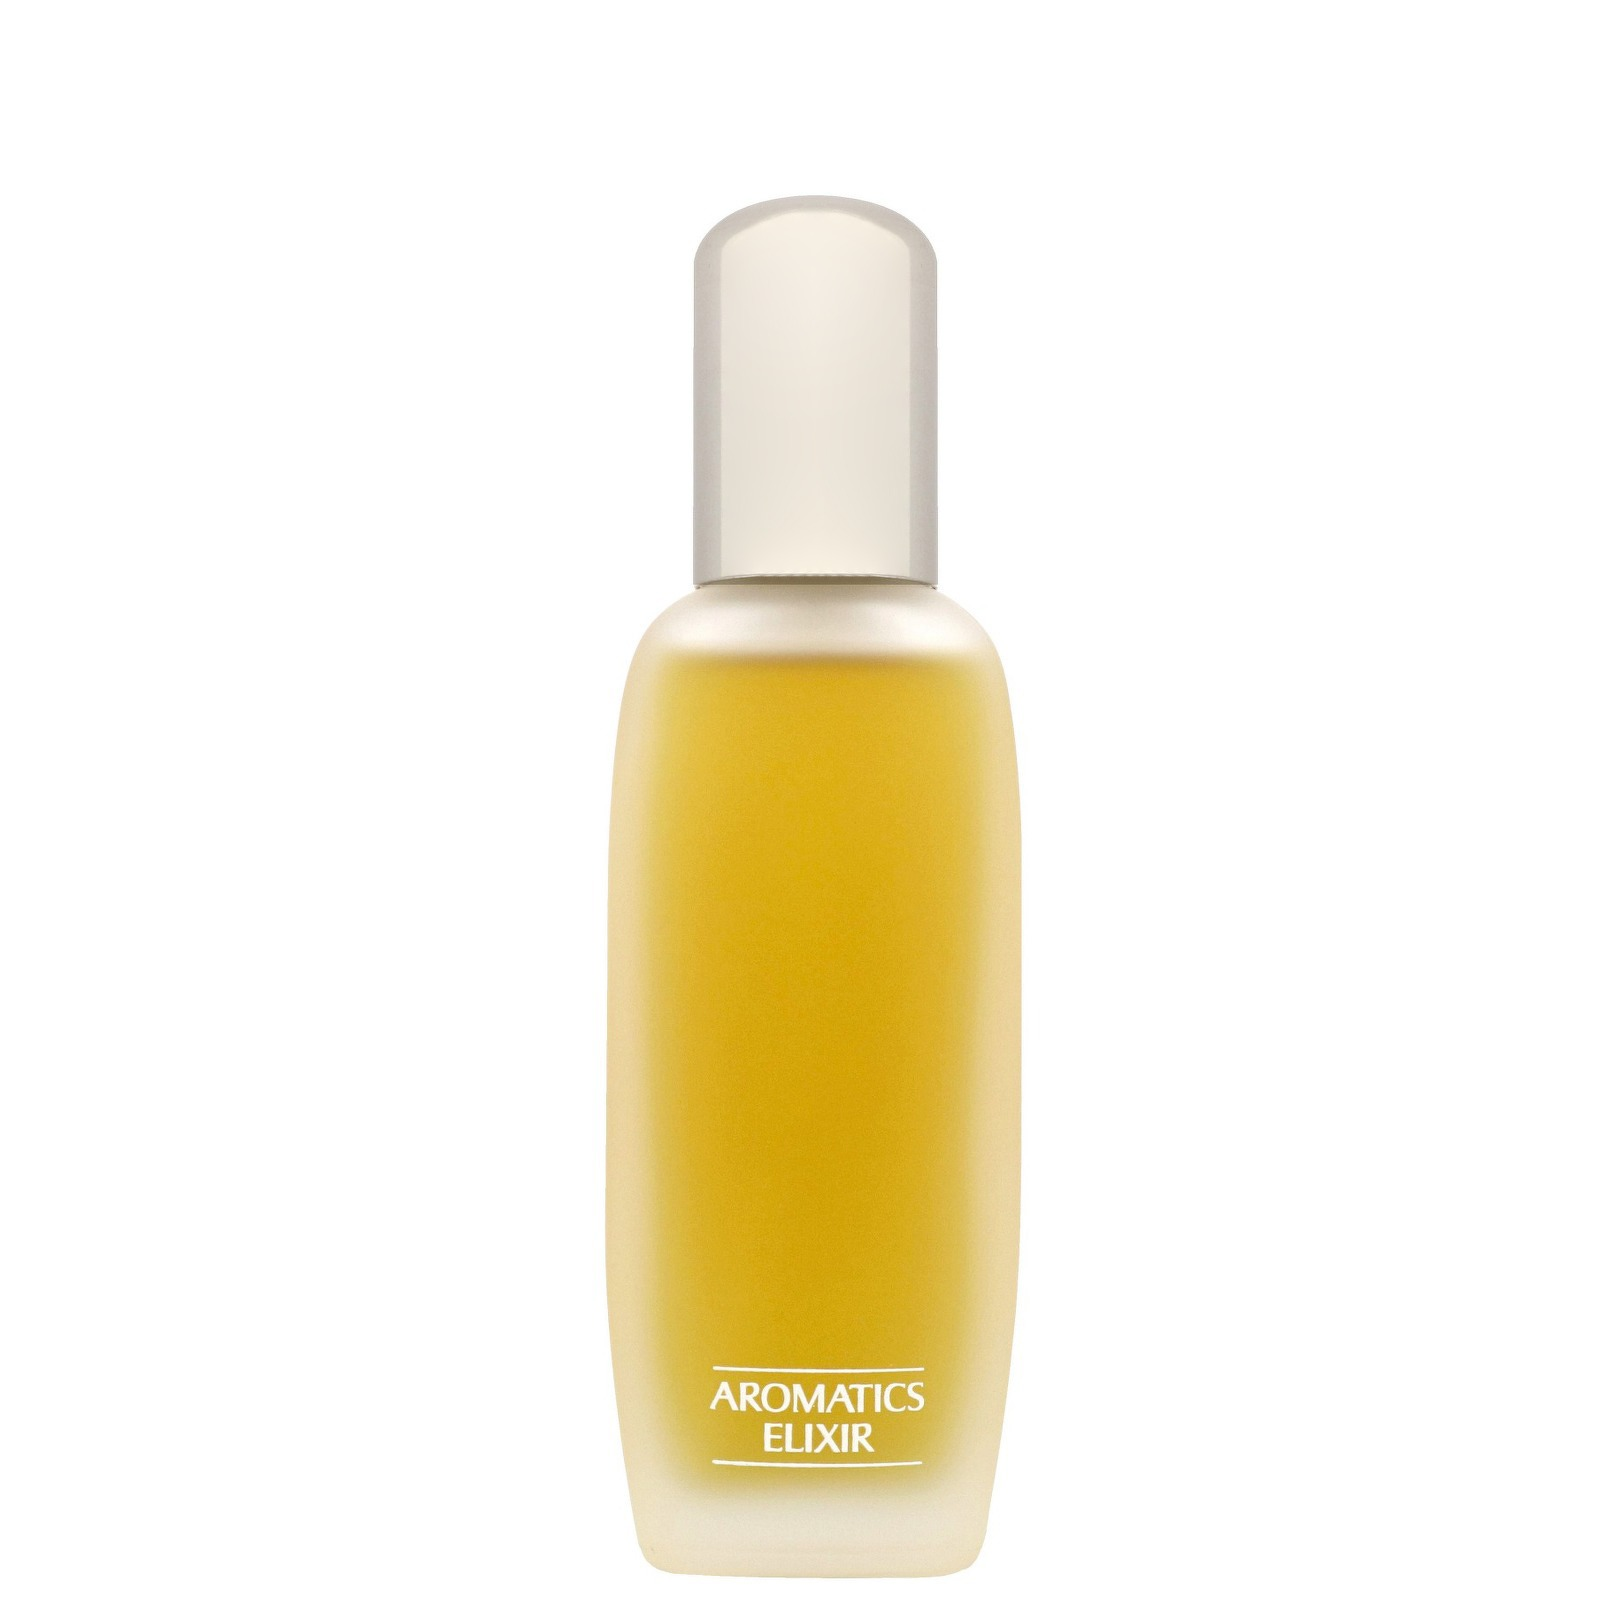 Clinique Aromatics Elixir Perfume Spray